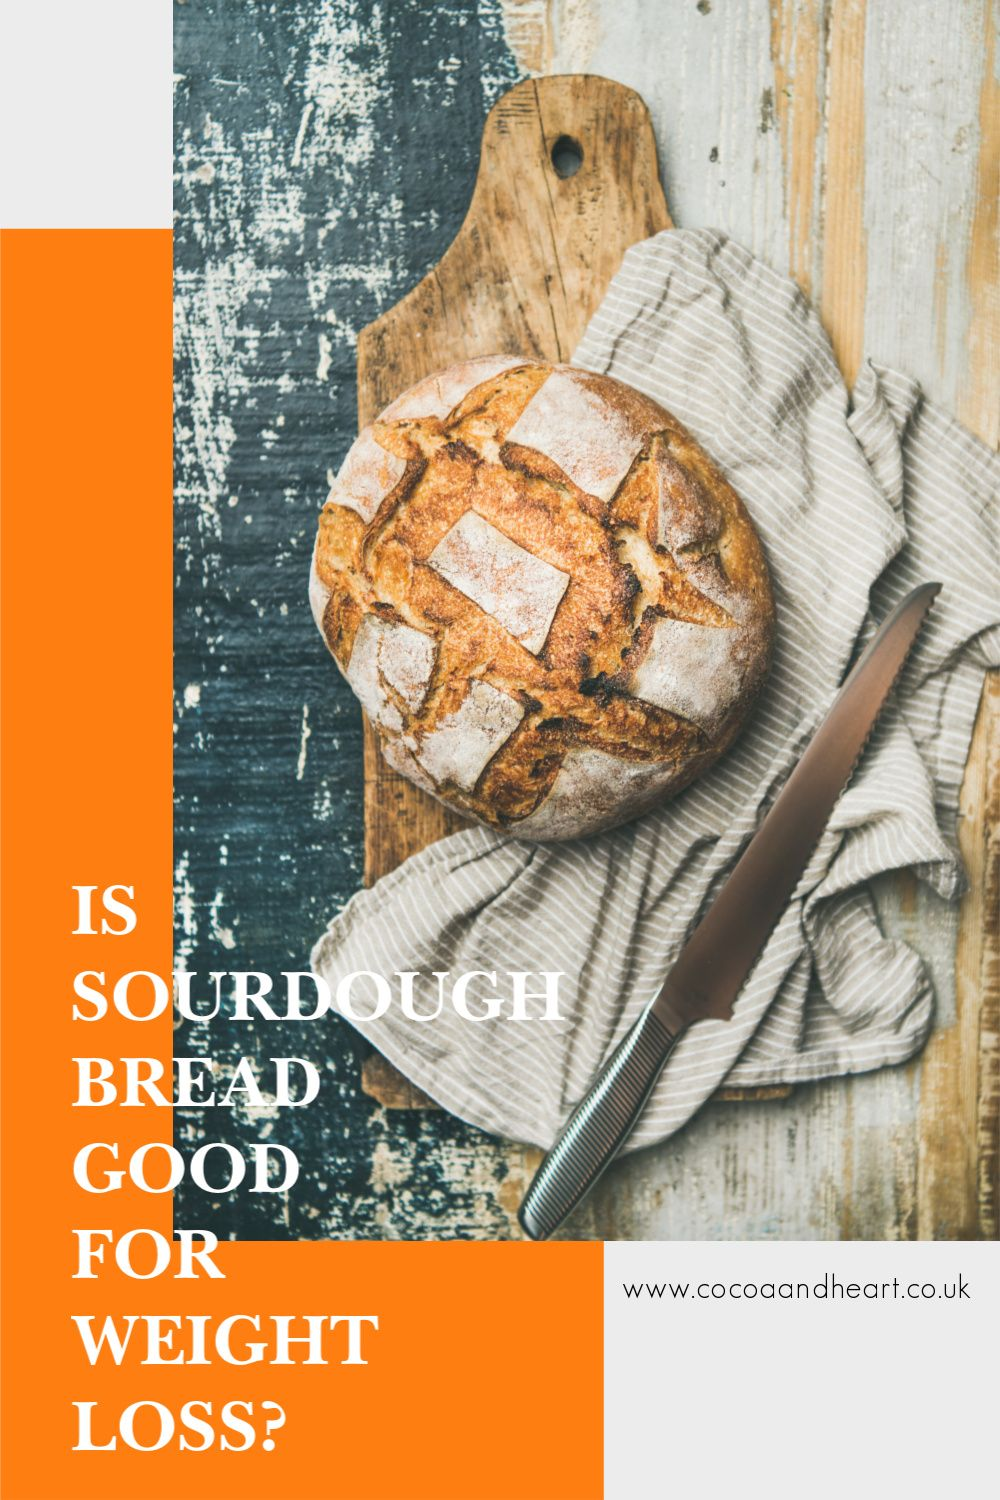 Is sourdough bread good for weight loss?